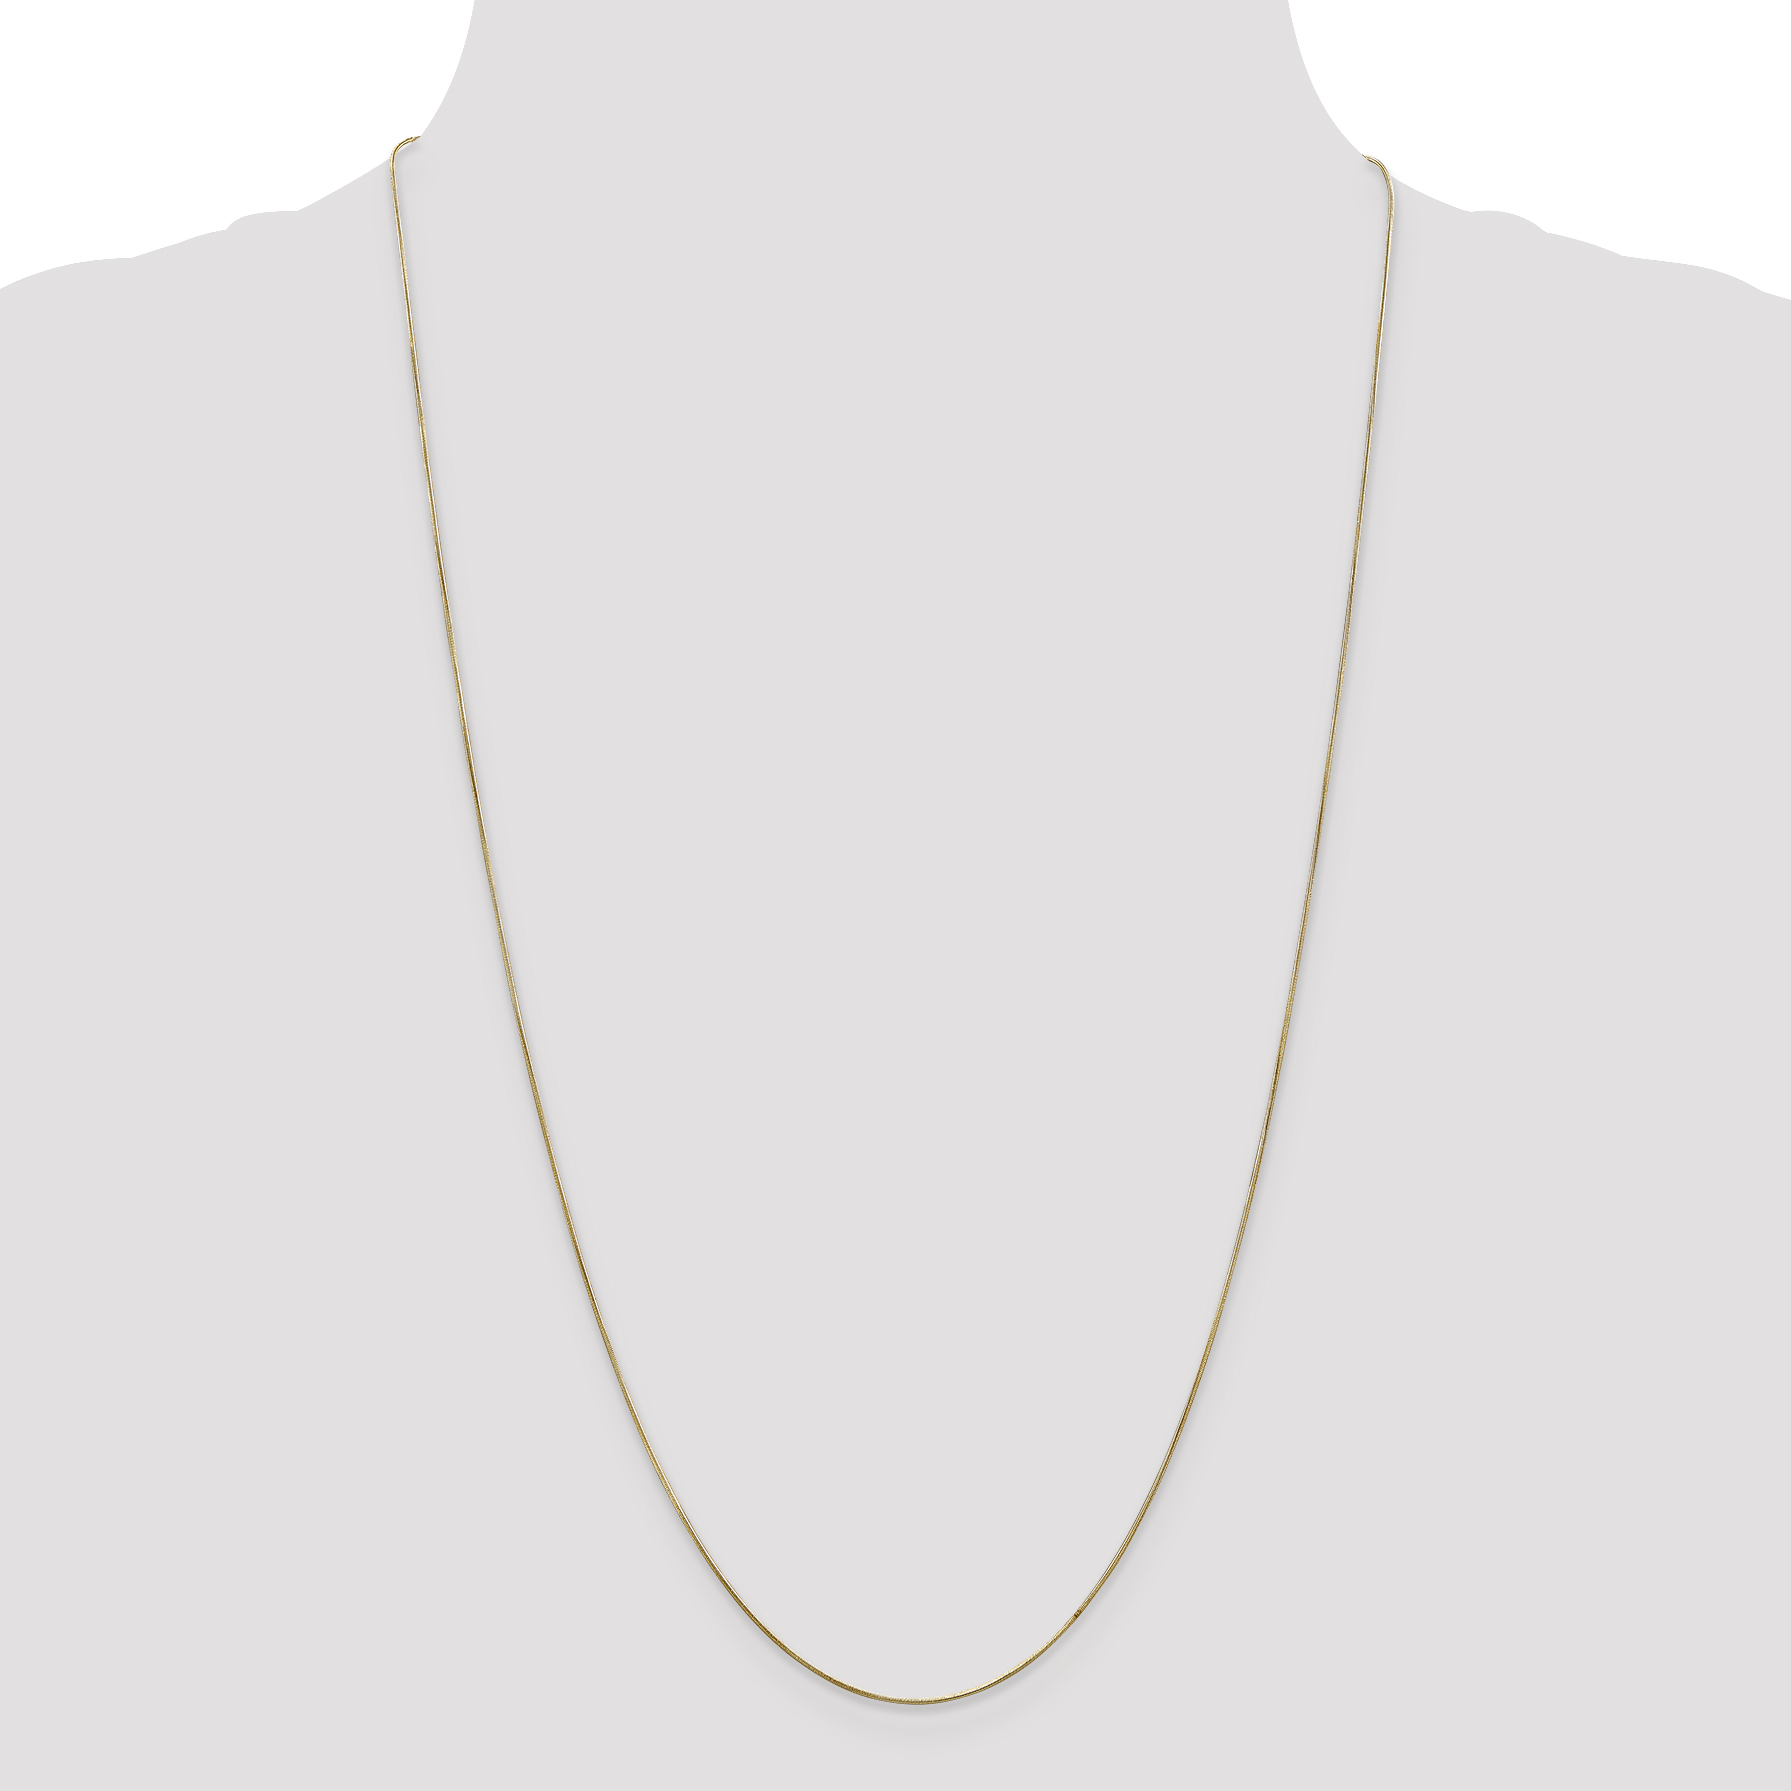 14K Yellow Gold .65mm Round Snake Chain 20 Inch - image 3 of 5